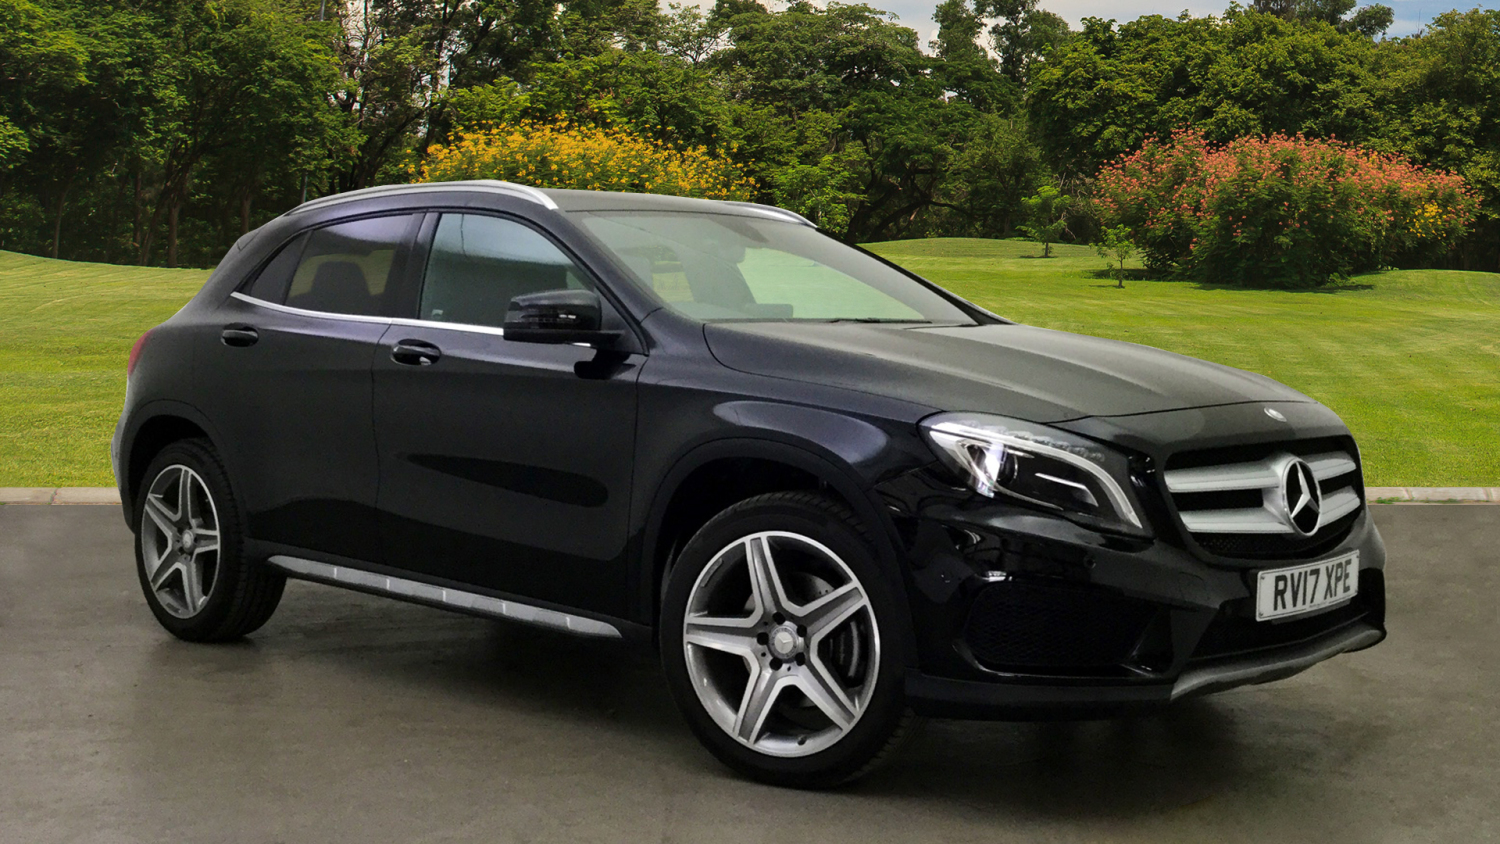 Used mercedes benz gla gla 220d 4matic amg line 5dr auto for Mercedes benz okc service